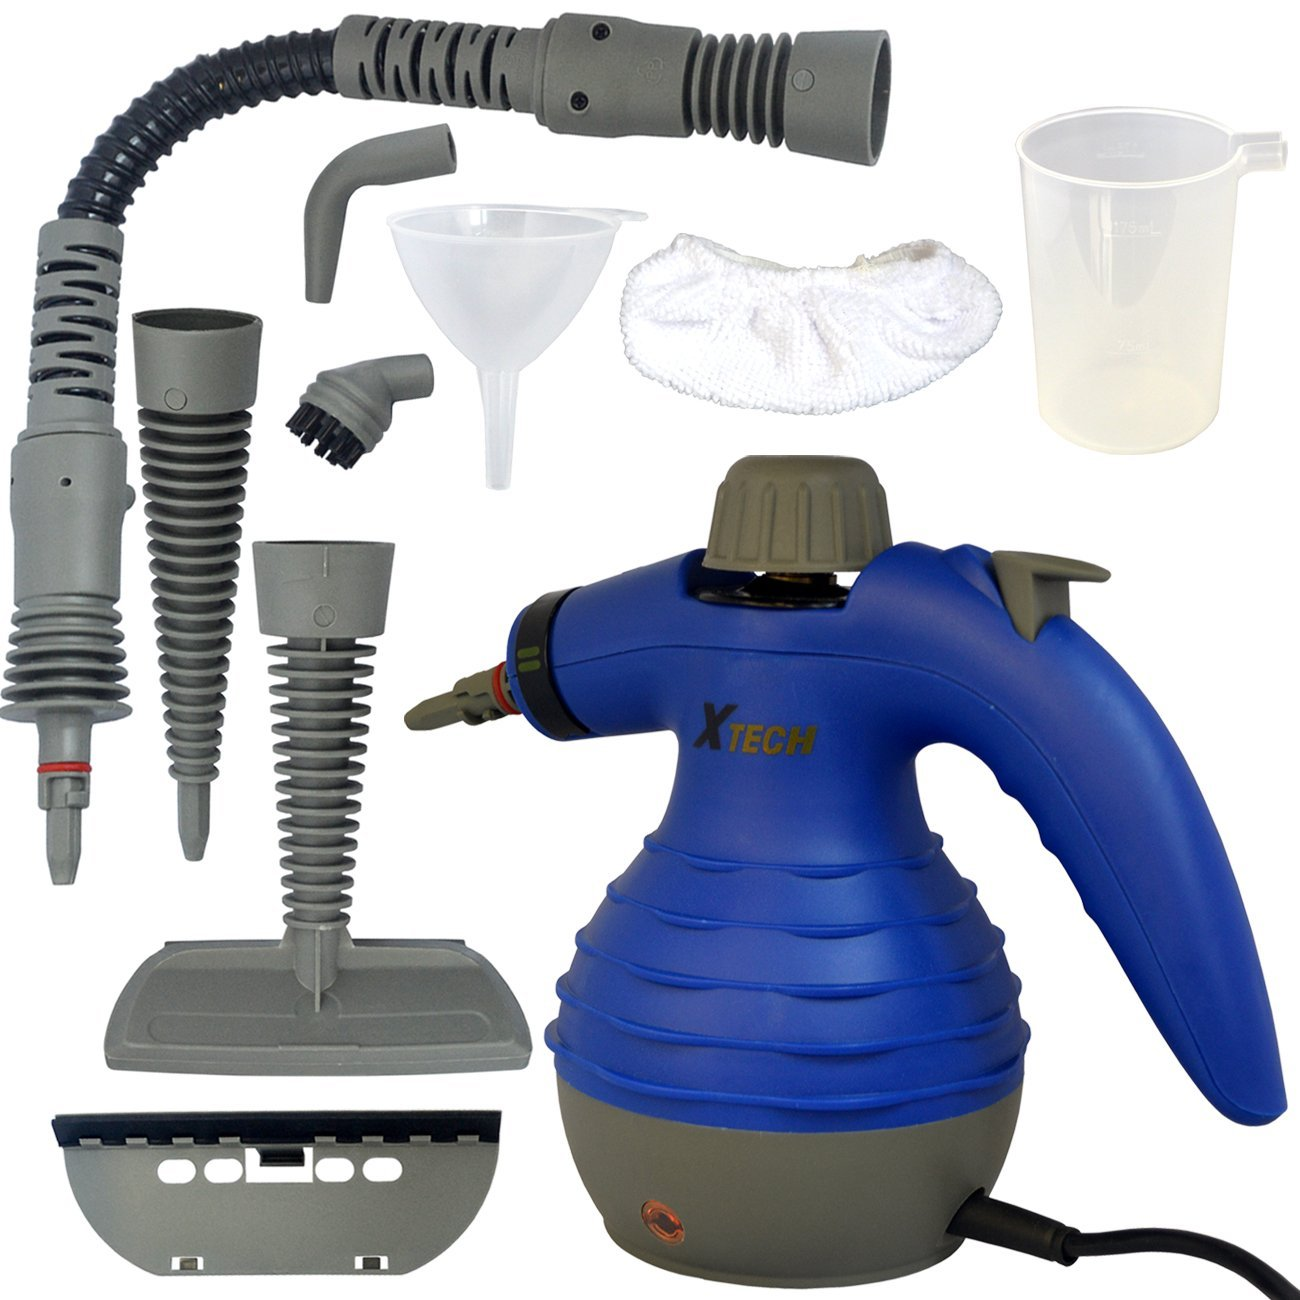 Xtech Multi-Purpose Electric Steam Cleaner plus 9 Assorted attachments and Accessories including Long Spray Nozzle, Round Brush Nozzle + More